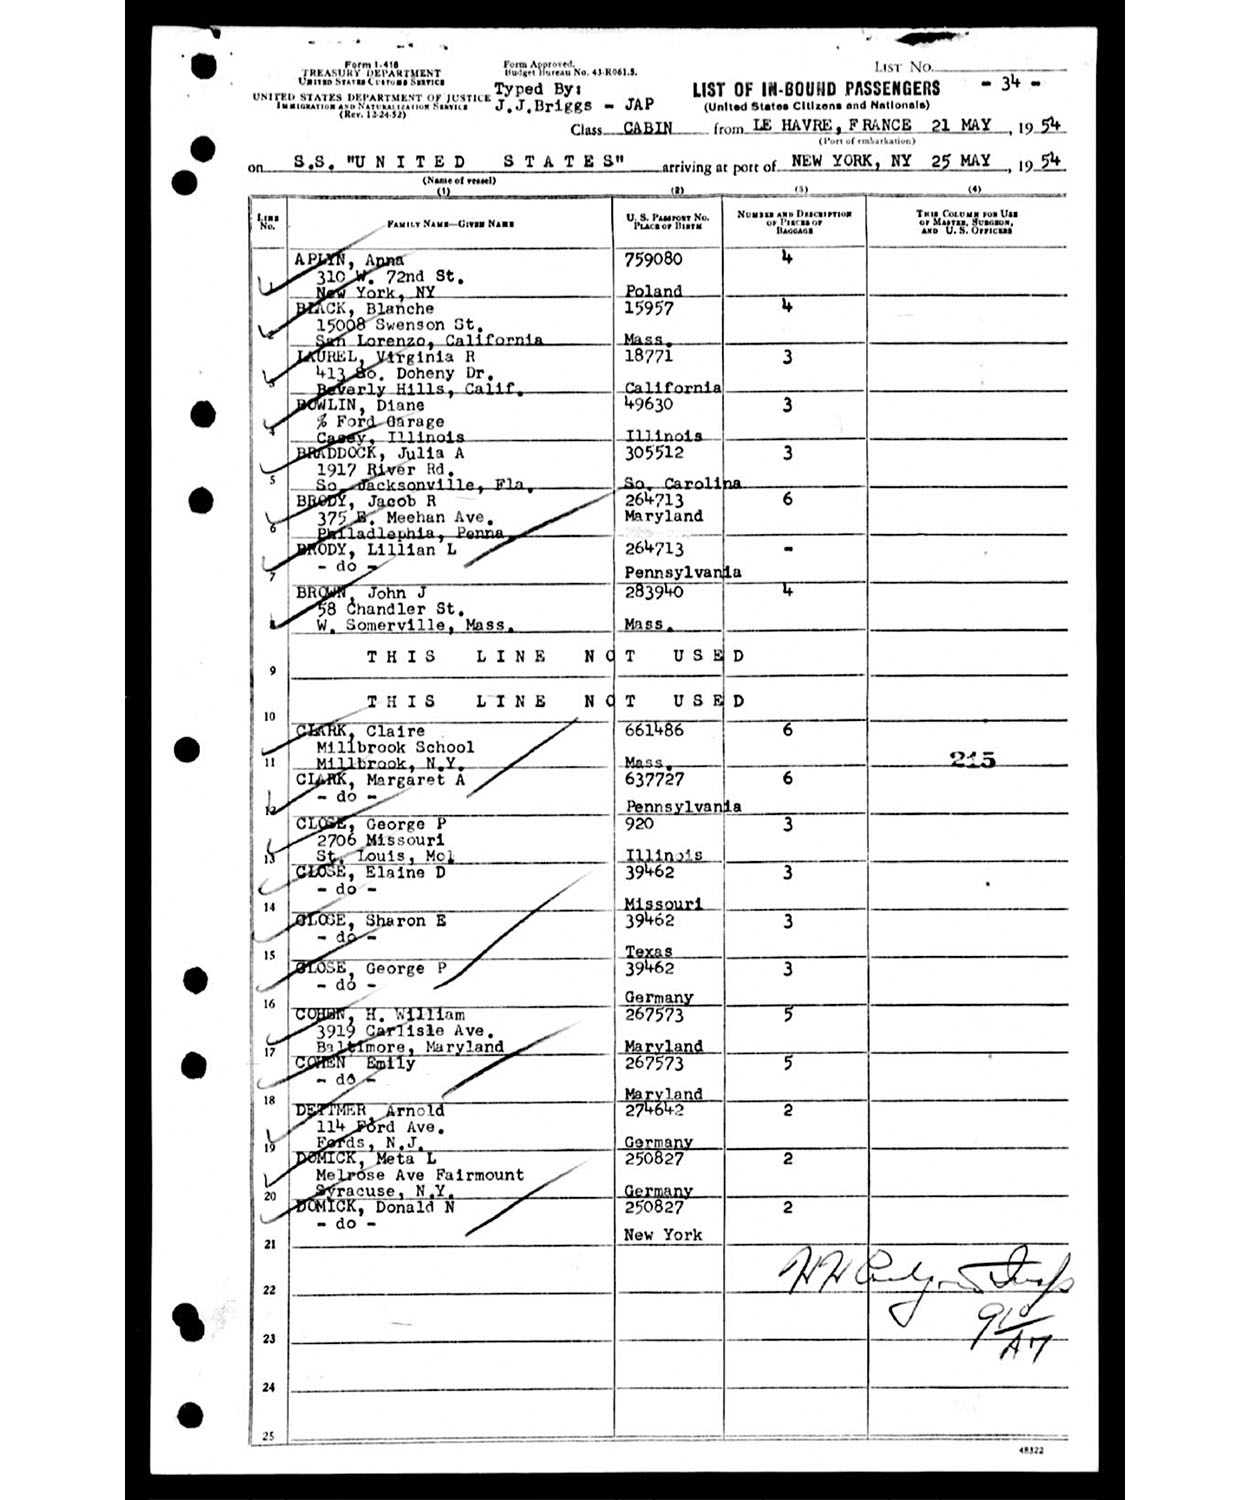 Southampton to New York Ship Manifest - May 25, 1954